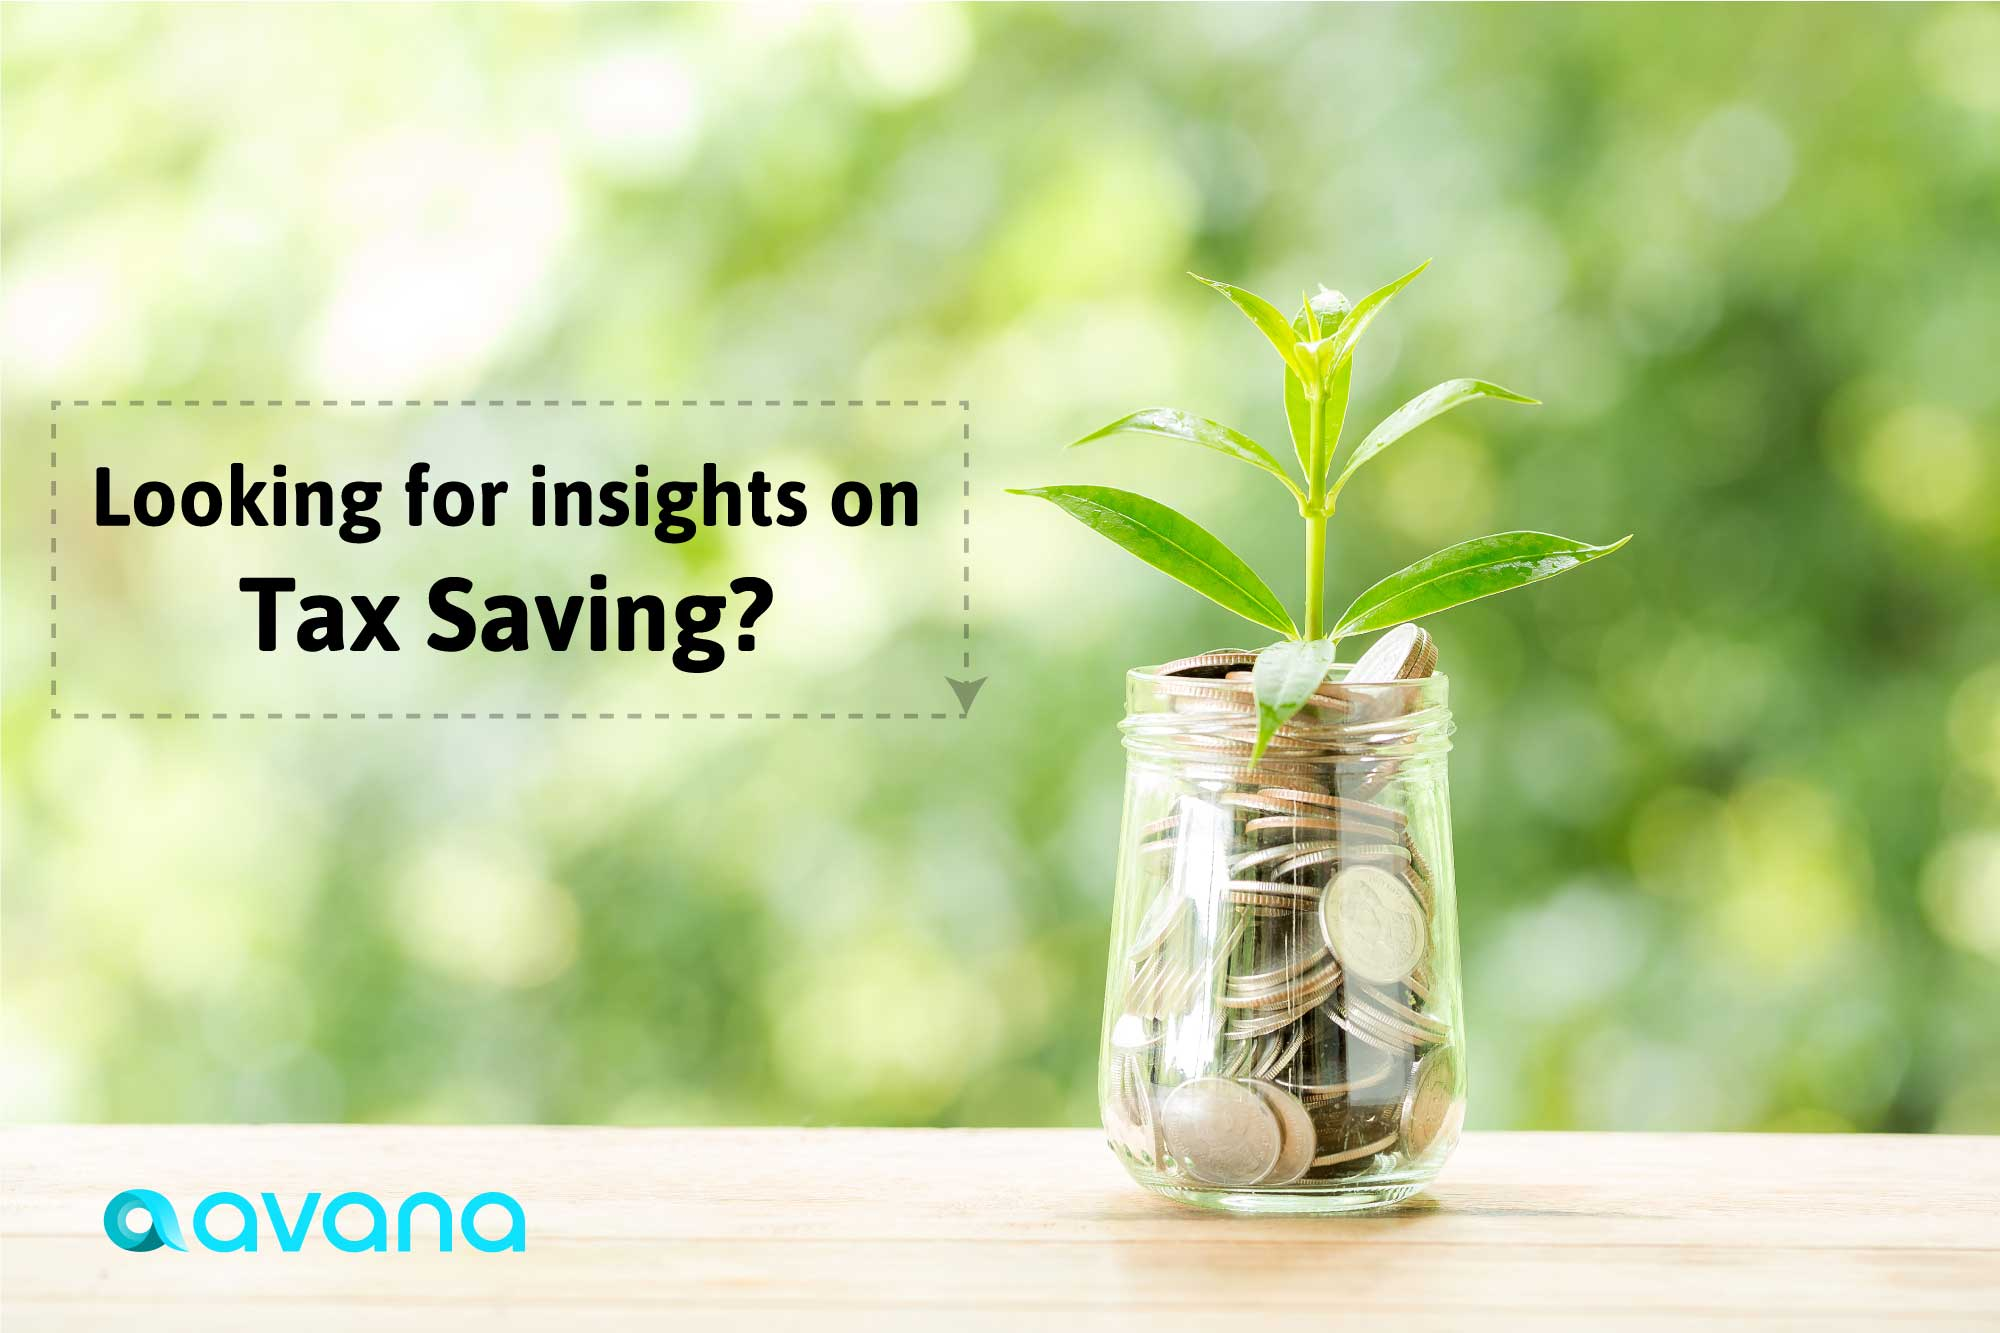 HOW TO SAVE TAXES IN A PRIVATE LIMITED COMPANY